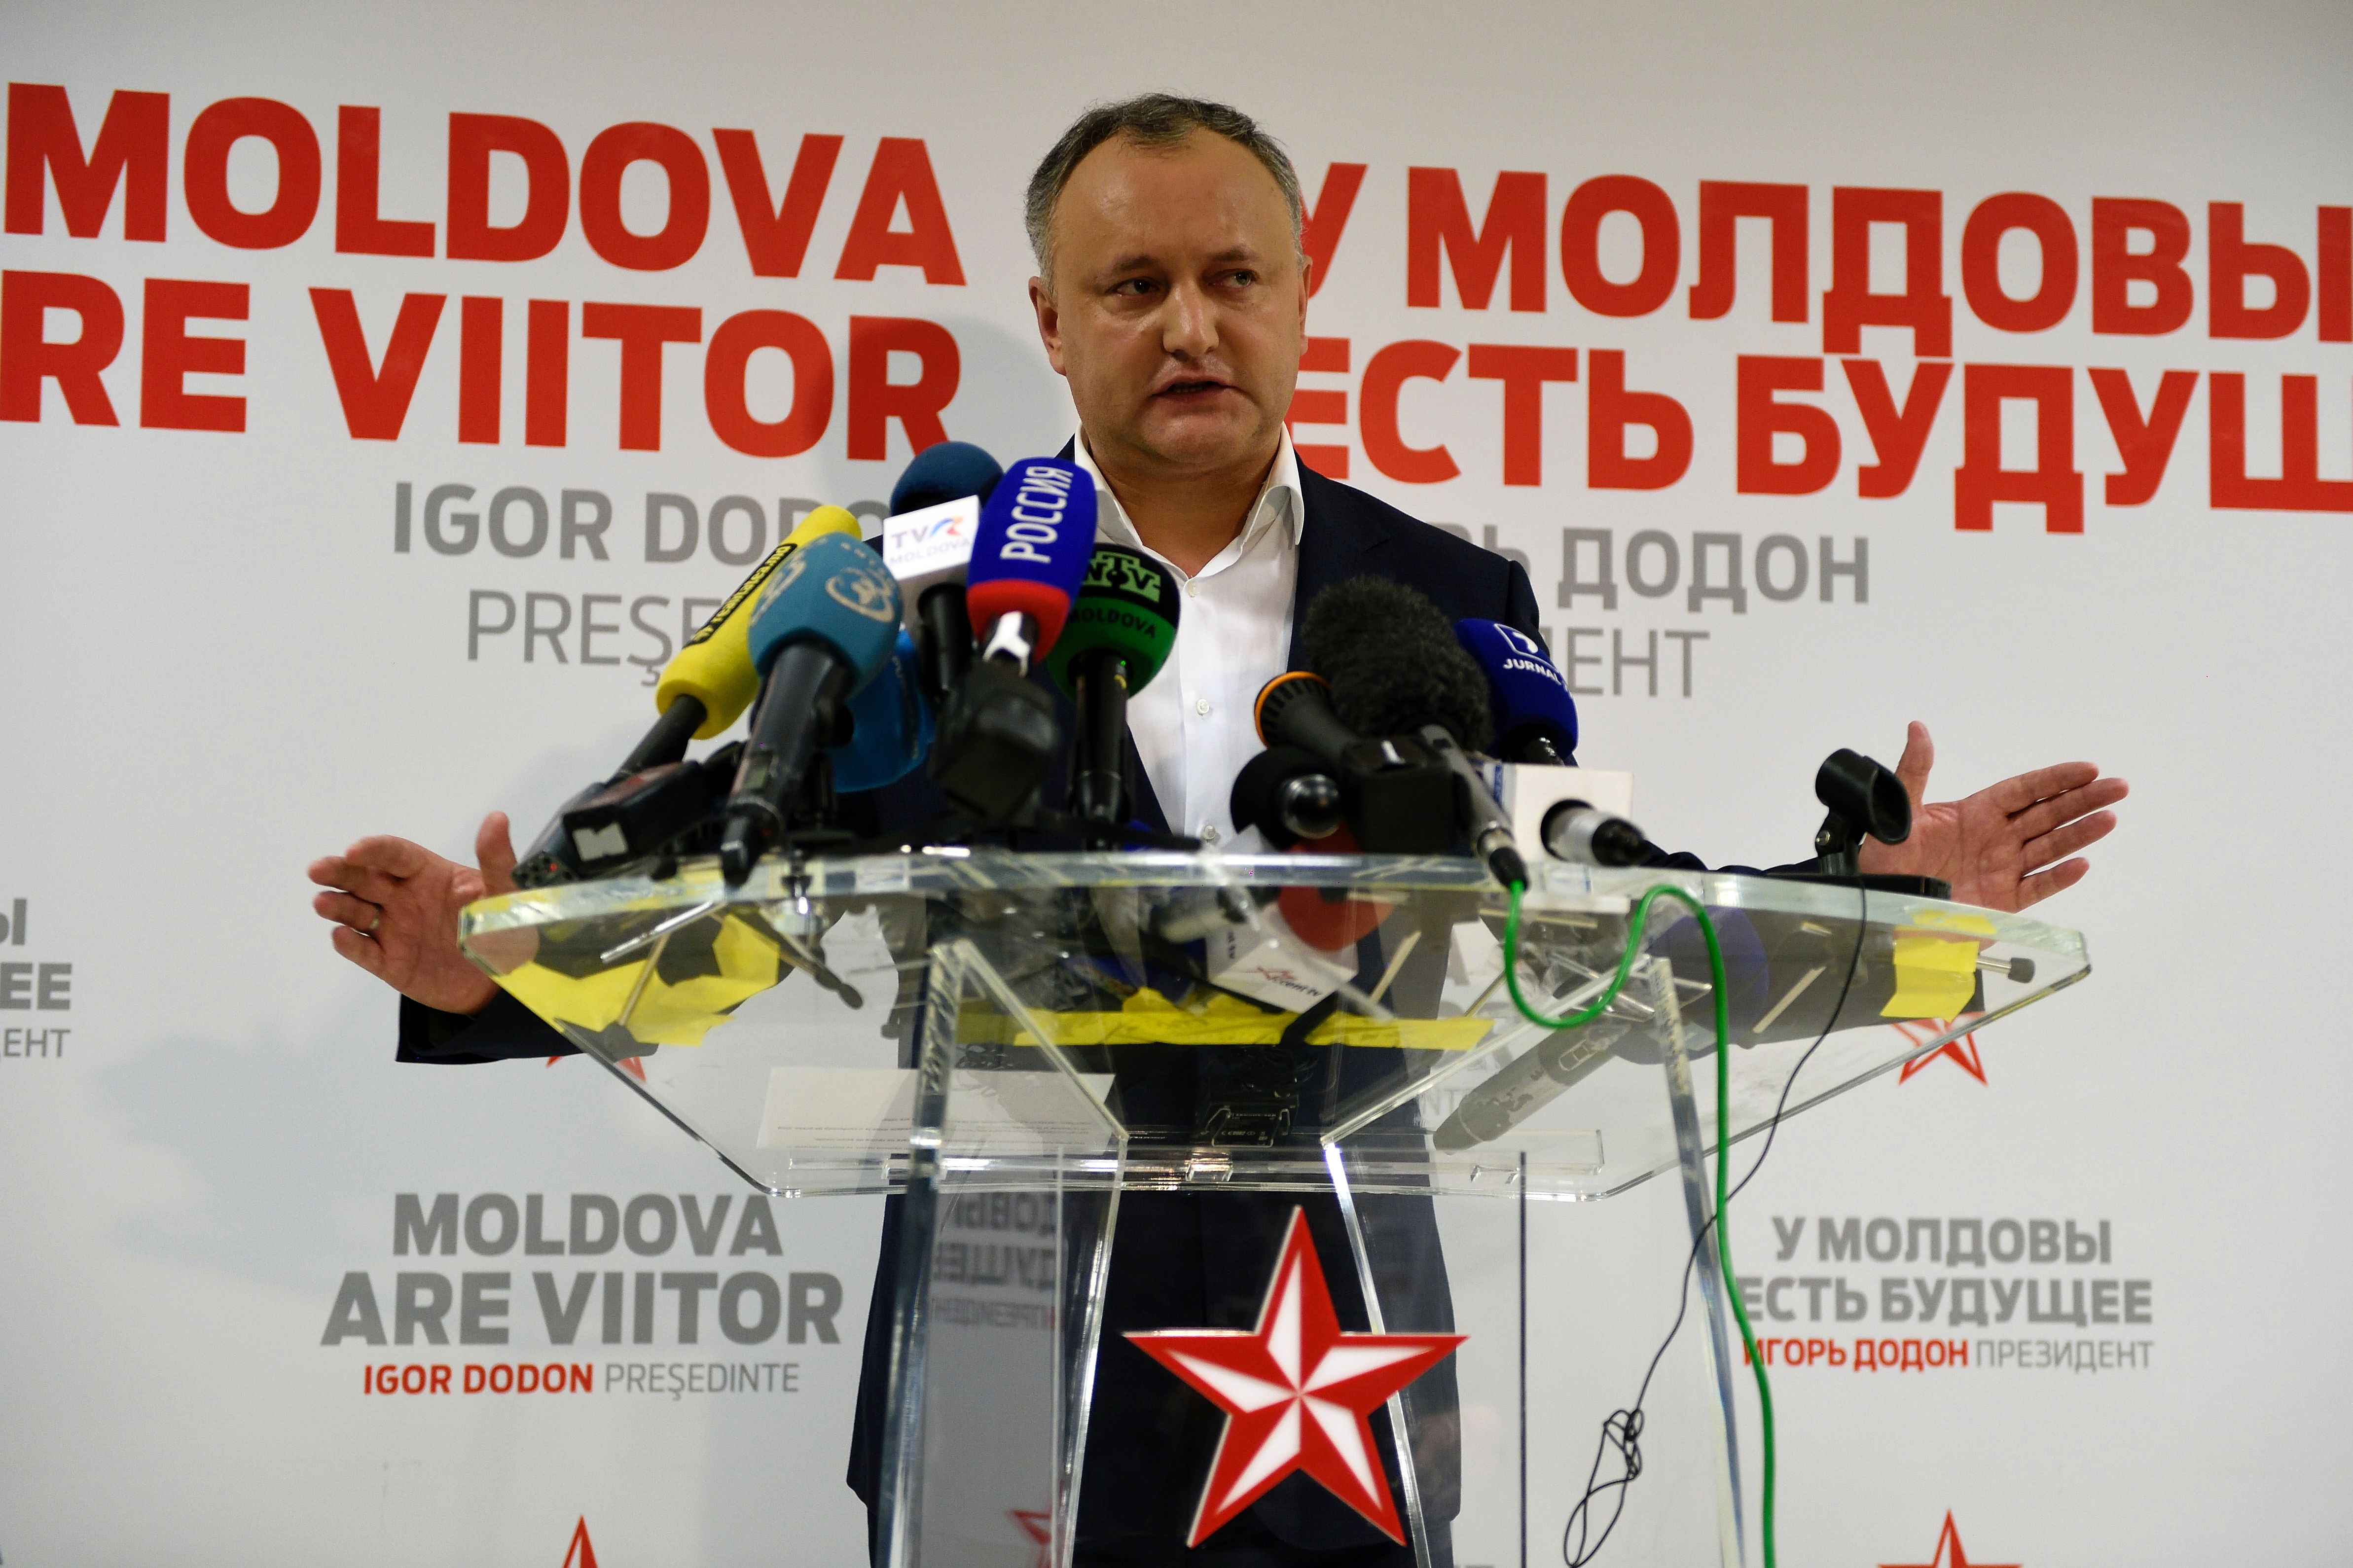 Moldova's presidential candidate Igor Dodon gestures during a press conference after the end of voting in Chisinau, Moldova, on Nov. 13, 2016